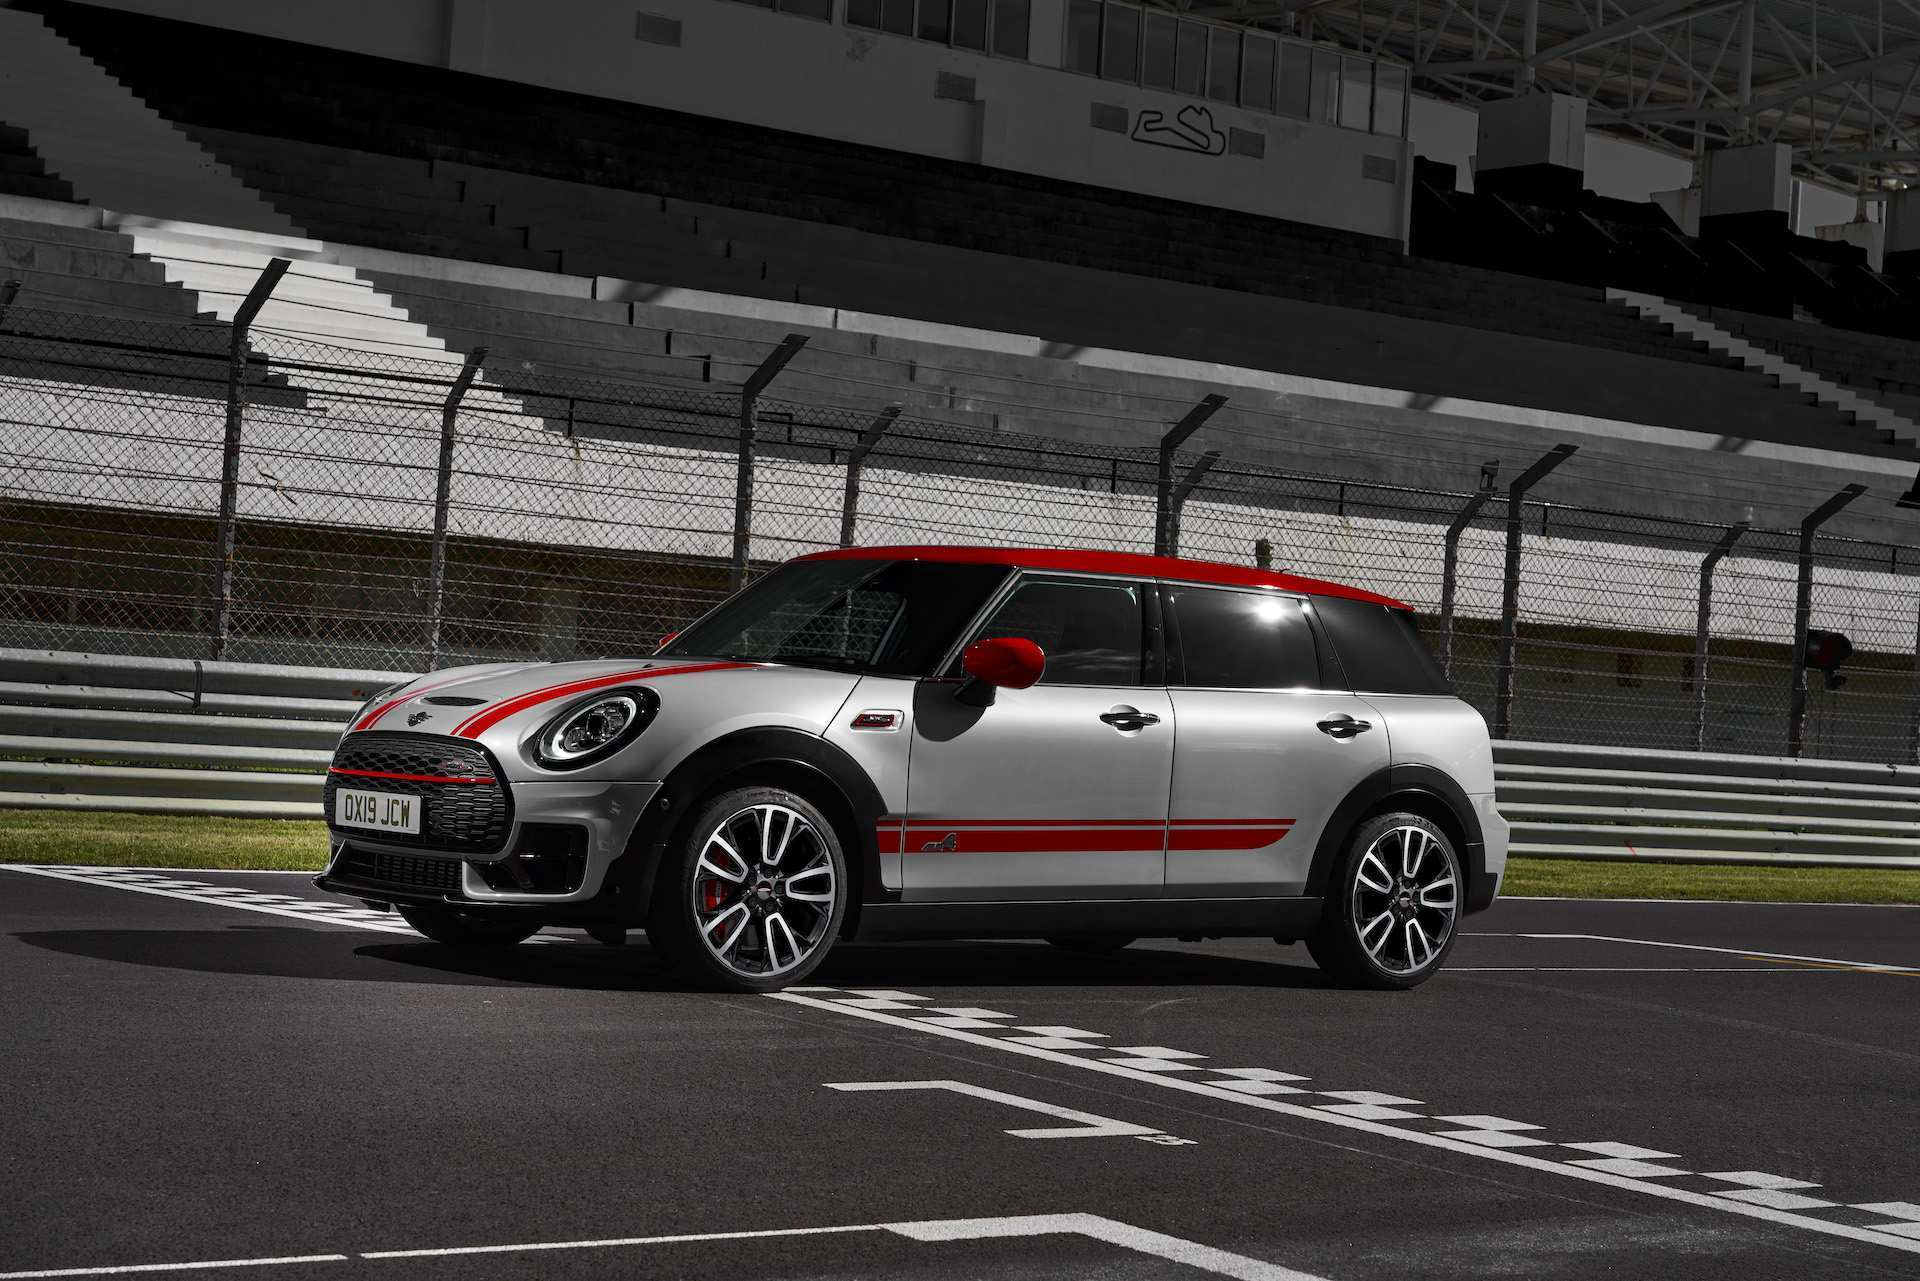 47 The Best 2020 Mini Cooper Clubman Exterior And Interior